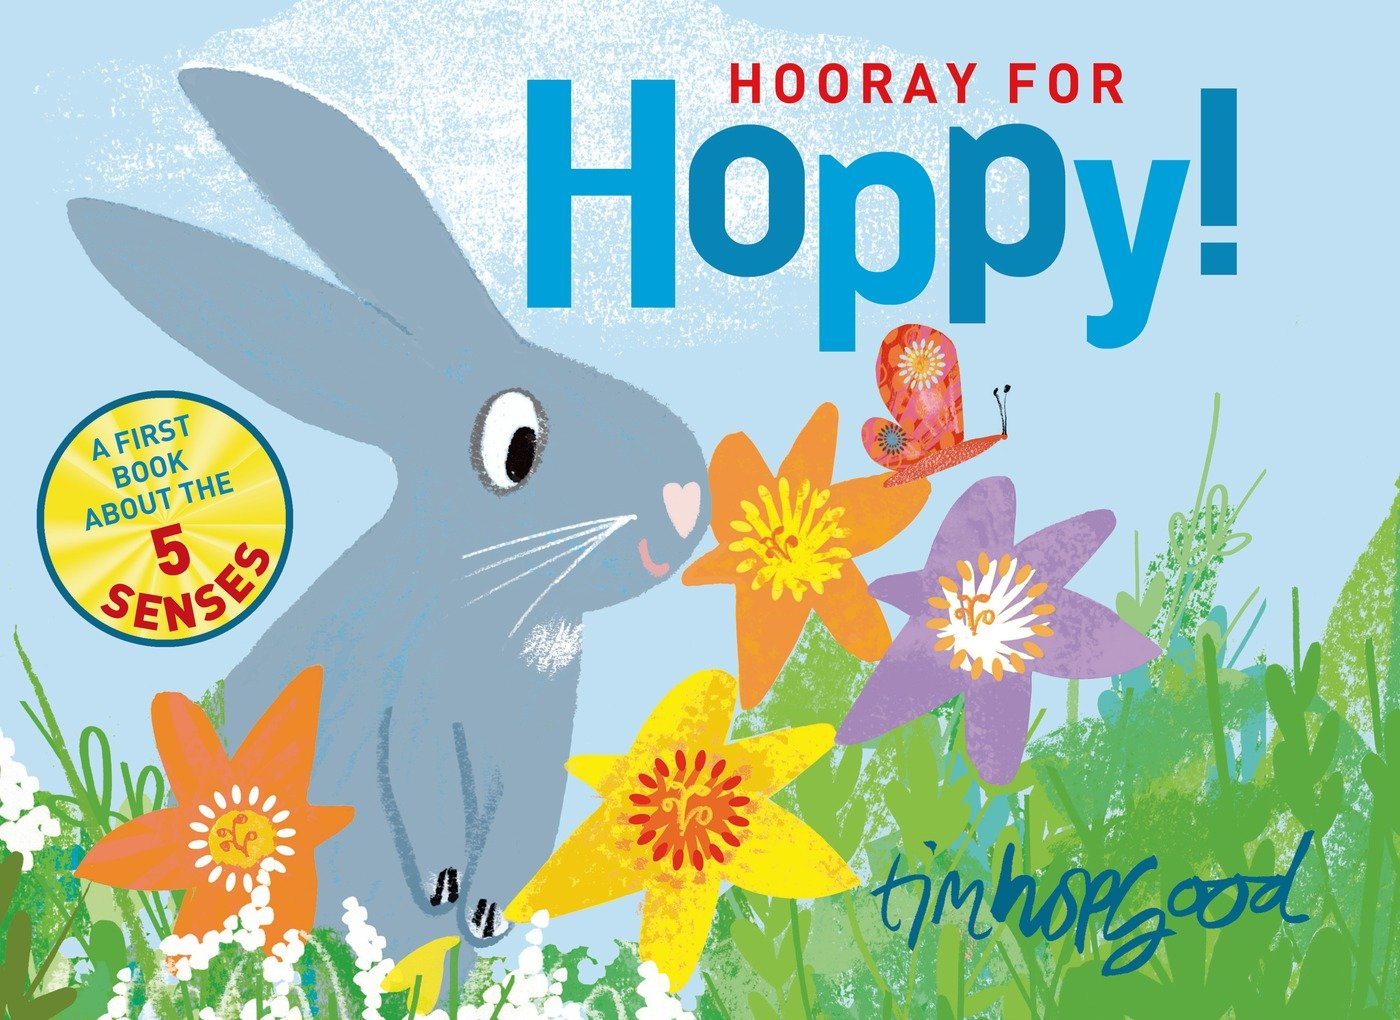 Amazon.com: Hooray for Hoppy!: A First Book about the Five Senses (9780374301293): Tim Hopgood: Books